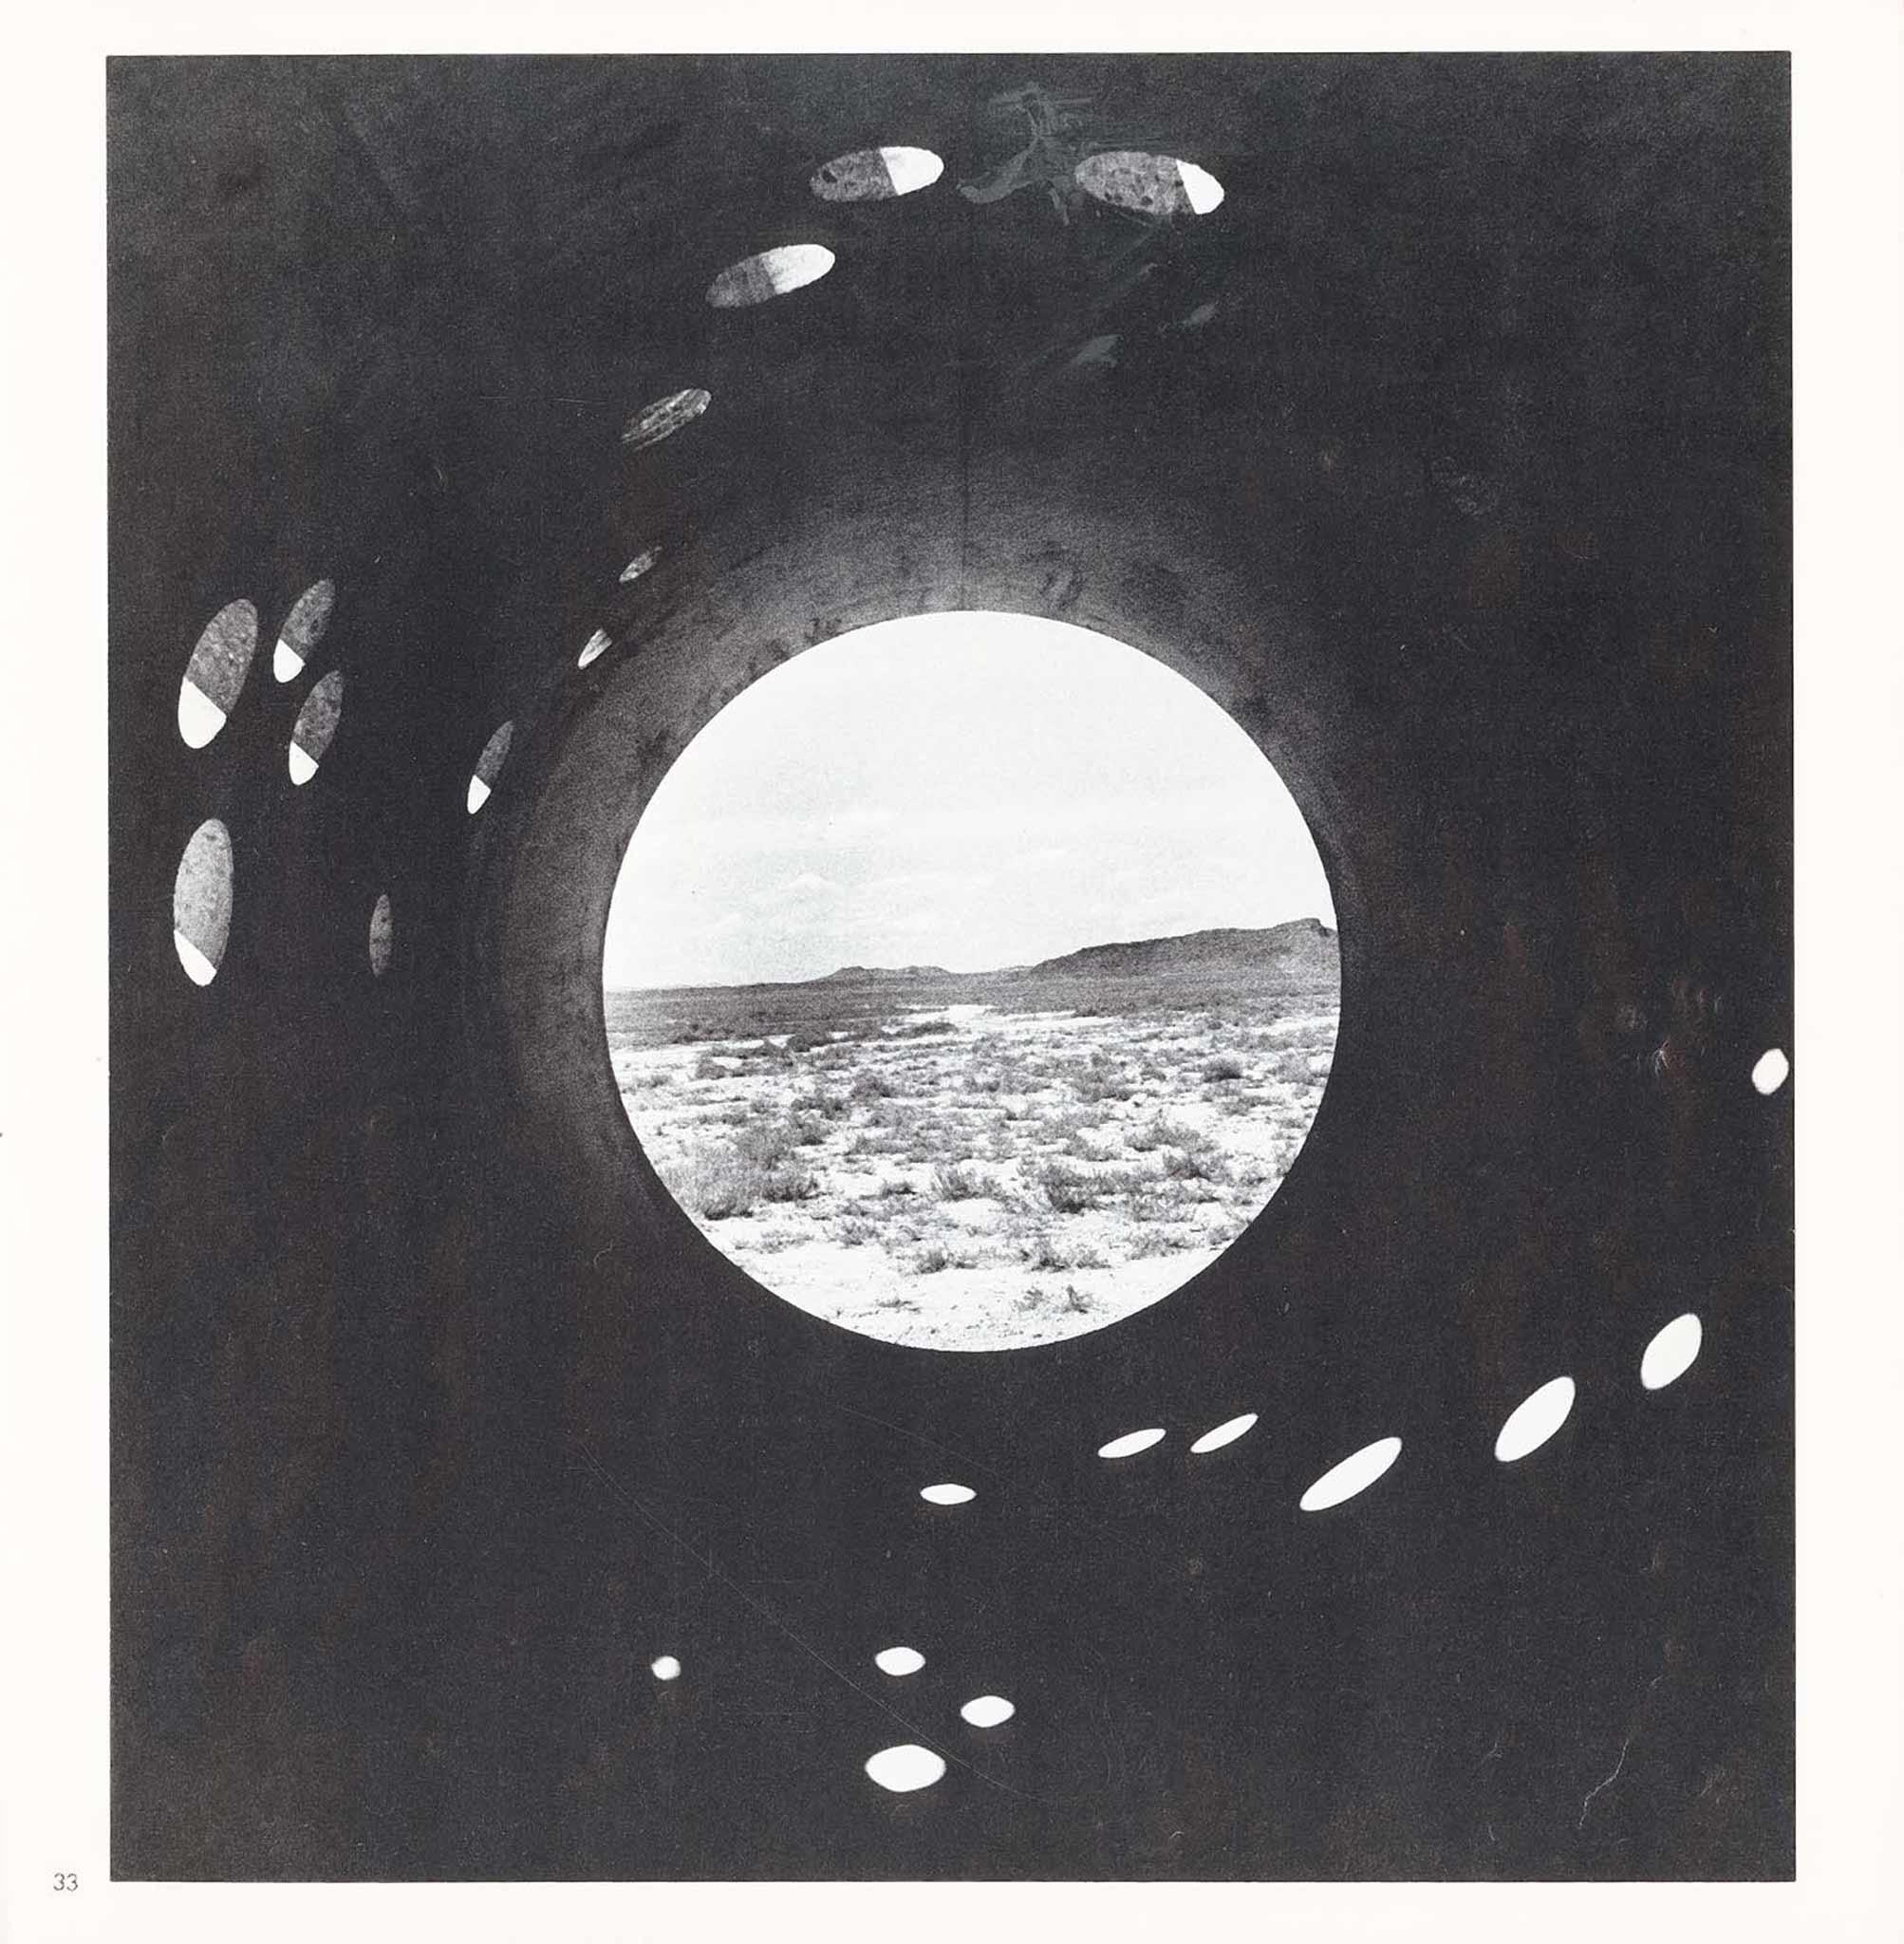 View inside a circular concrete tunnel looking out through a circular opening at the end onto the desert and mountains.  Small circular holes in the top and sides of the tunnel cast light onto the bottom of the tunnel.